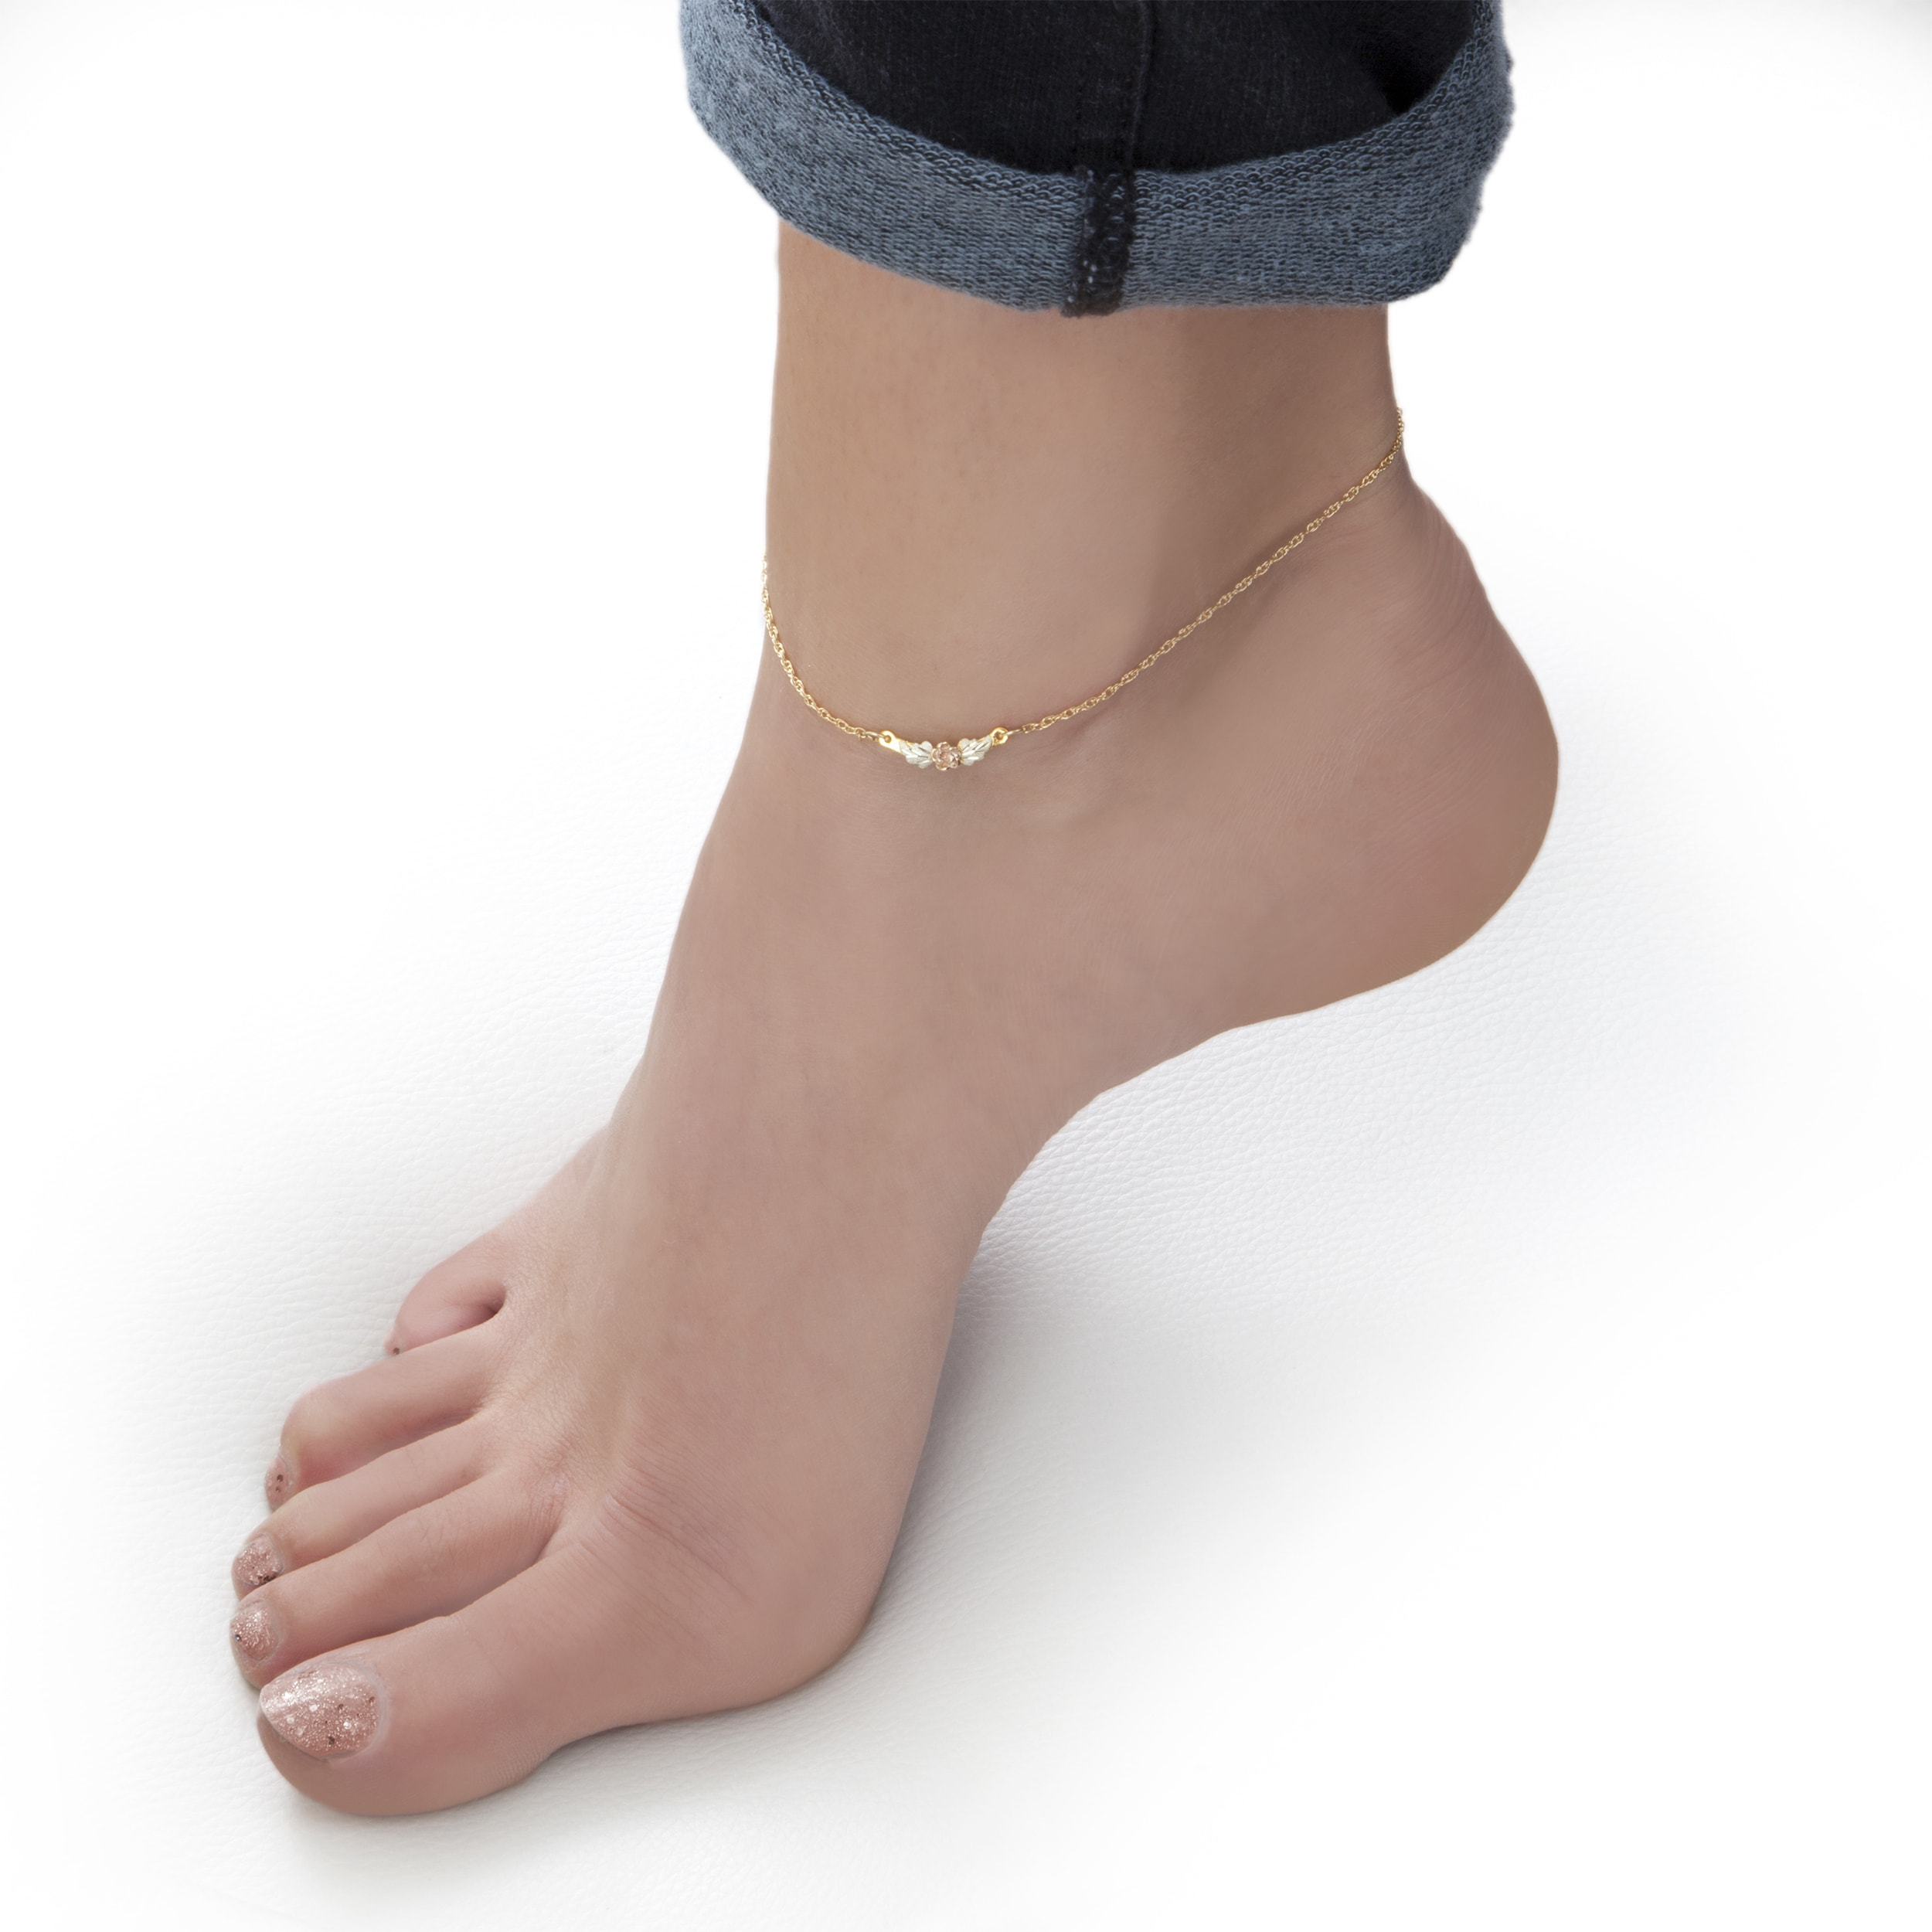 solid rose heart anklet bracelet jewellery bead sterling with silver plated gold inches